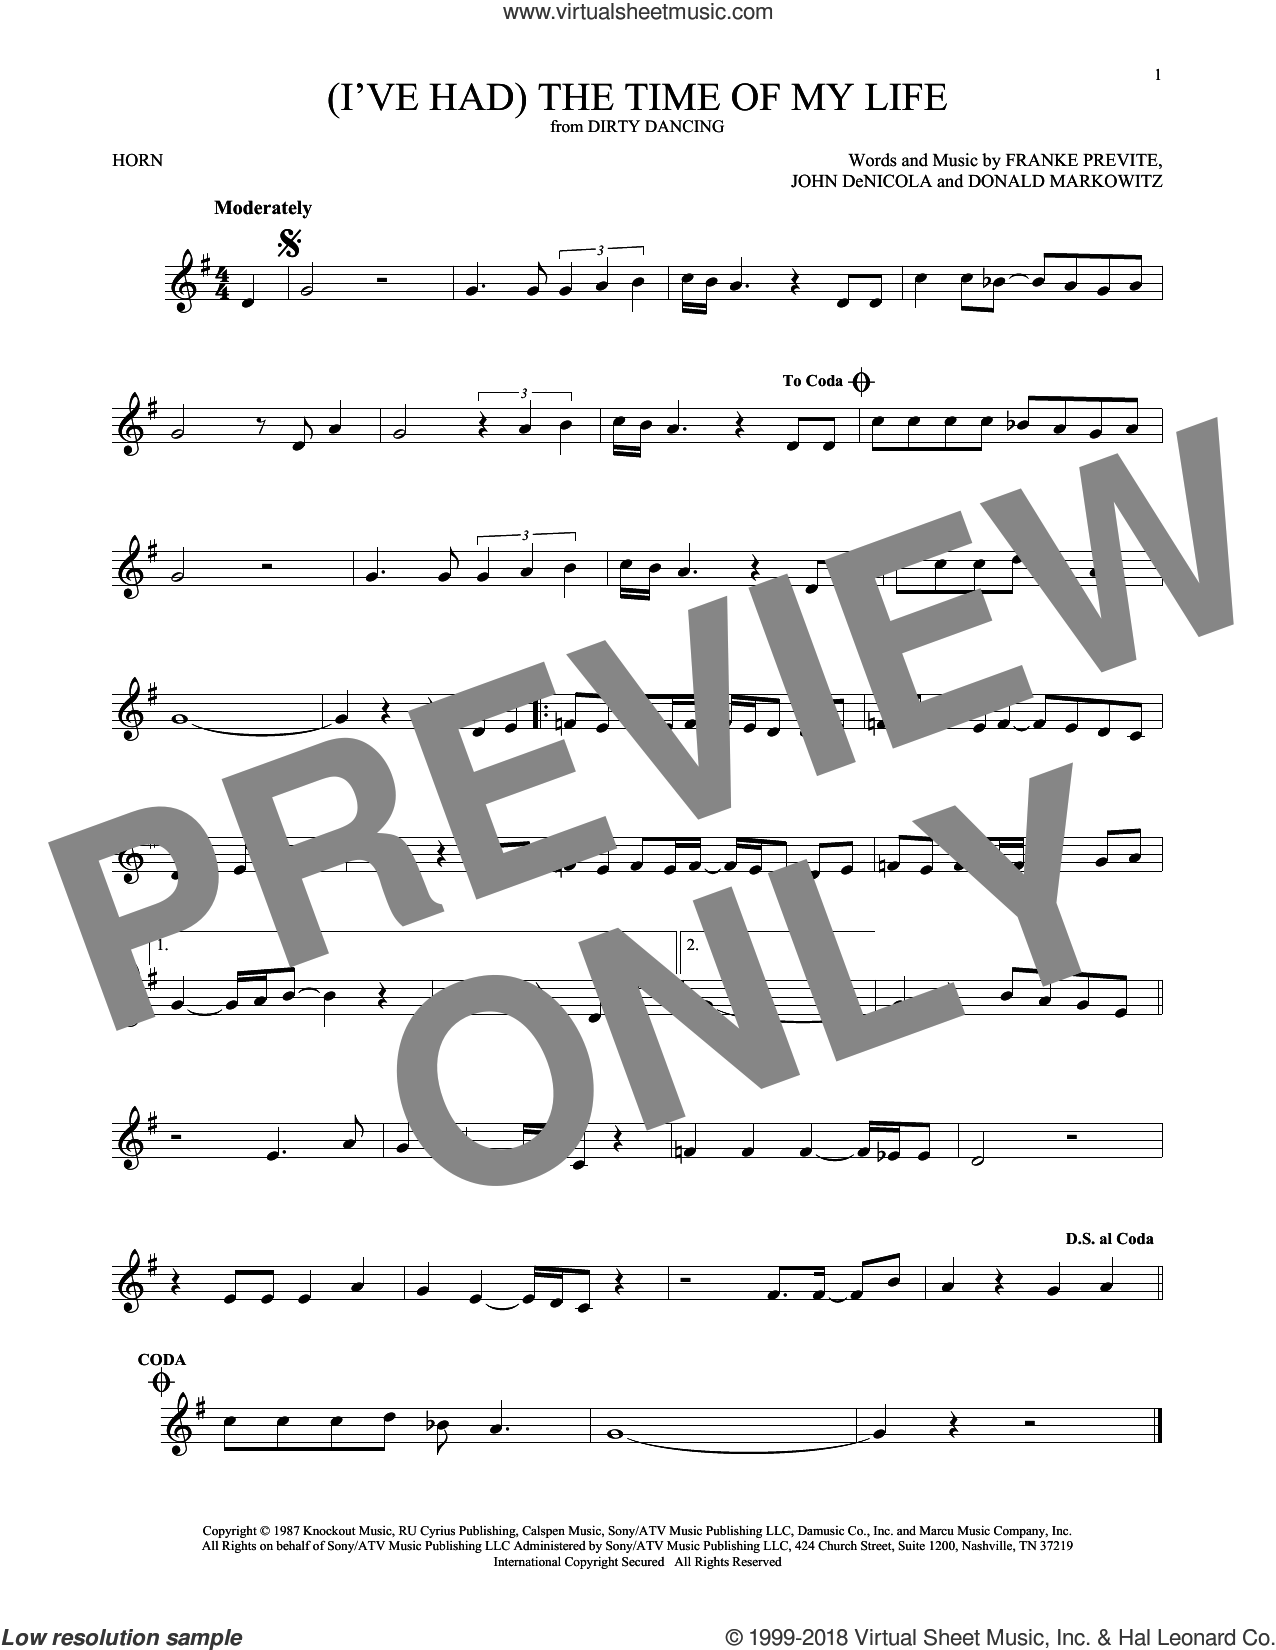 (I've Had) The Time Of My Life sheet music for horn solo by Bill Medley & Jennifer Warnes, Donald Markowitz, Franke Previte and John DeNicola, intermediate skill level